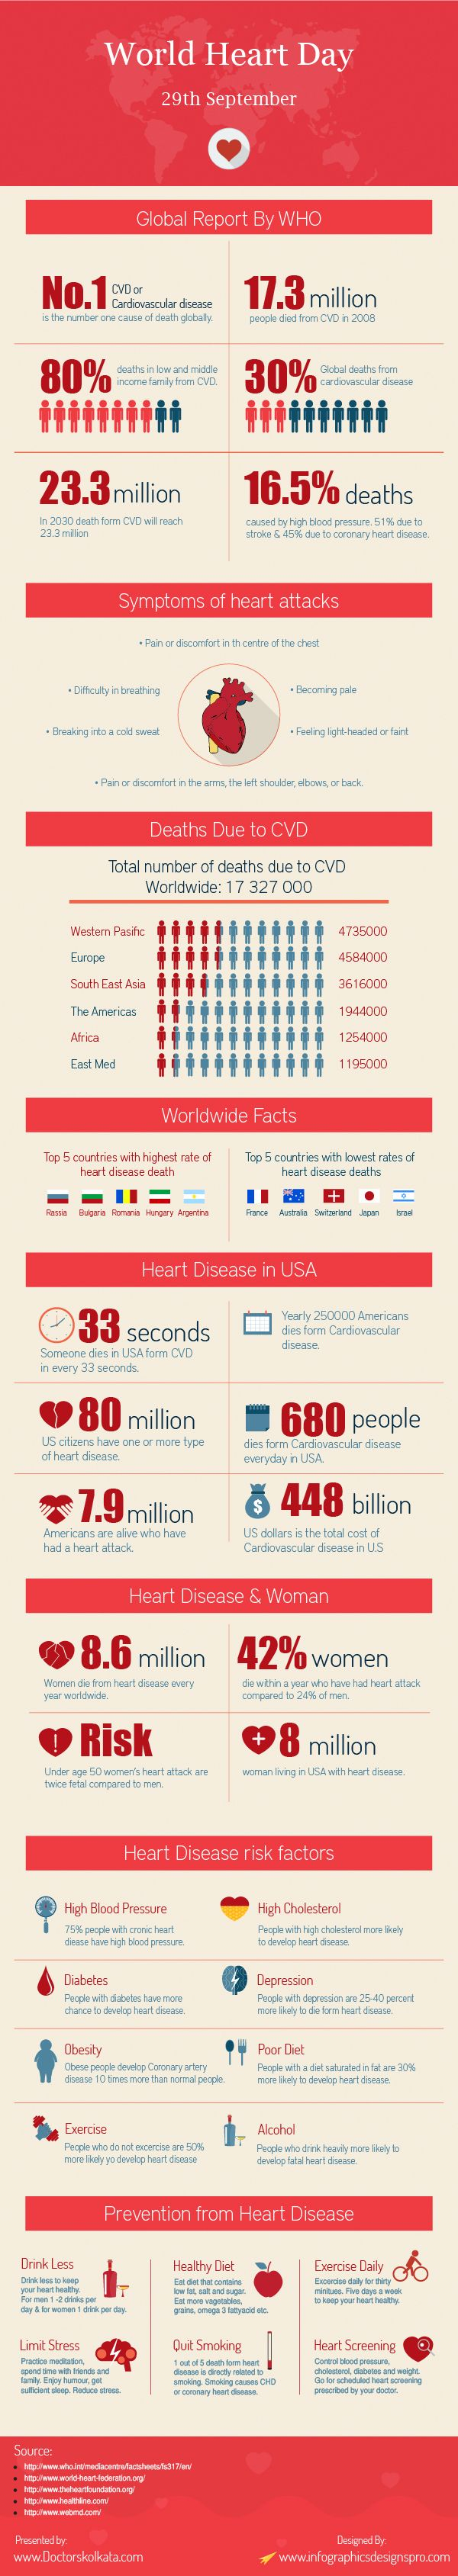 World Heart Day 2014. Infographics, Heart disease Statistics reported by WHO, Heart disease in USA, woman heart disease, health